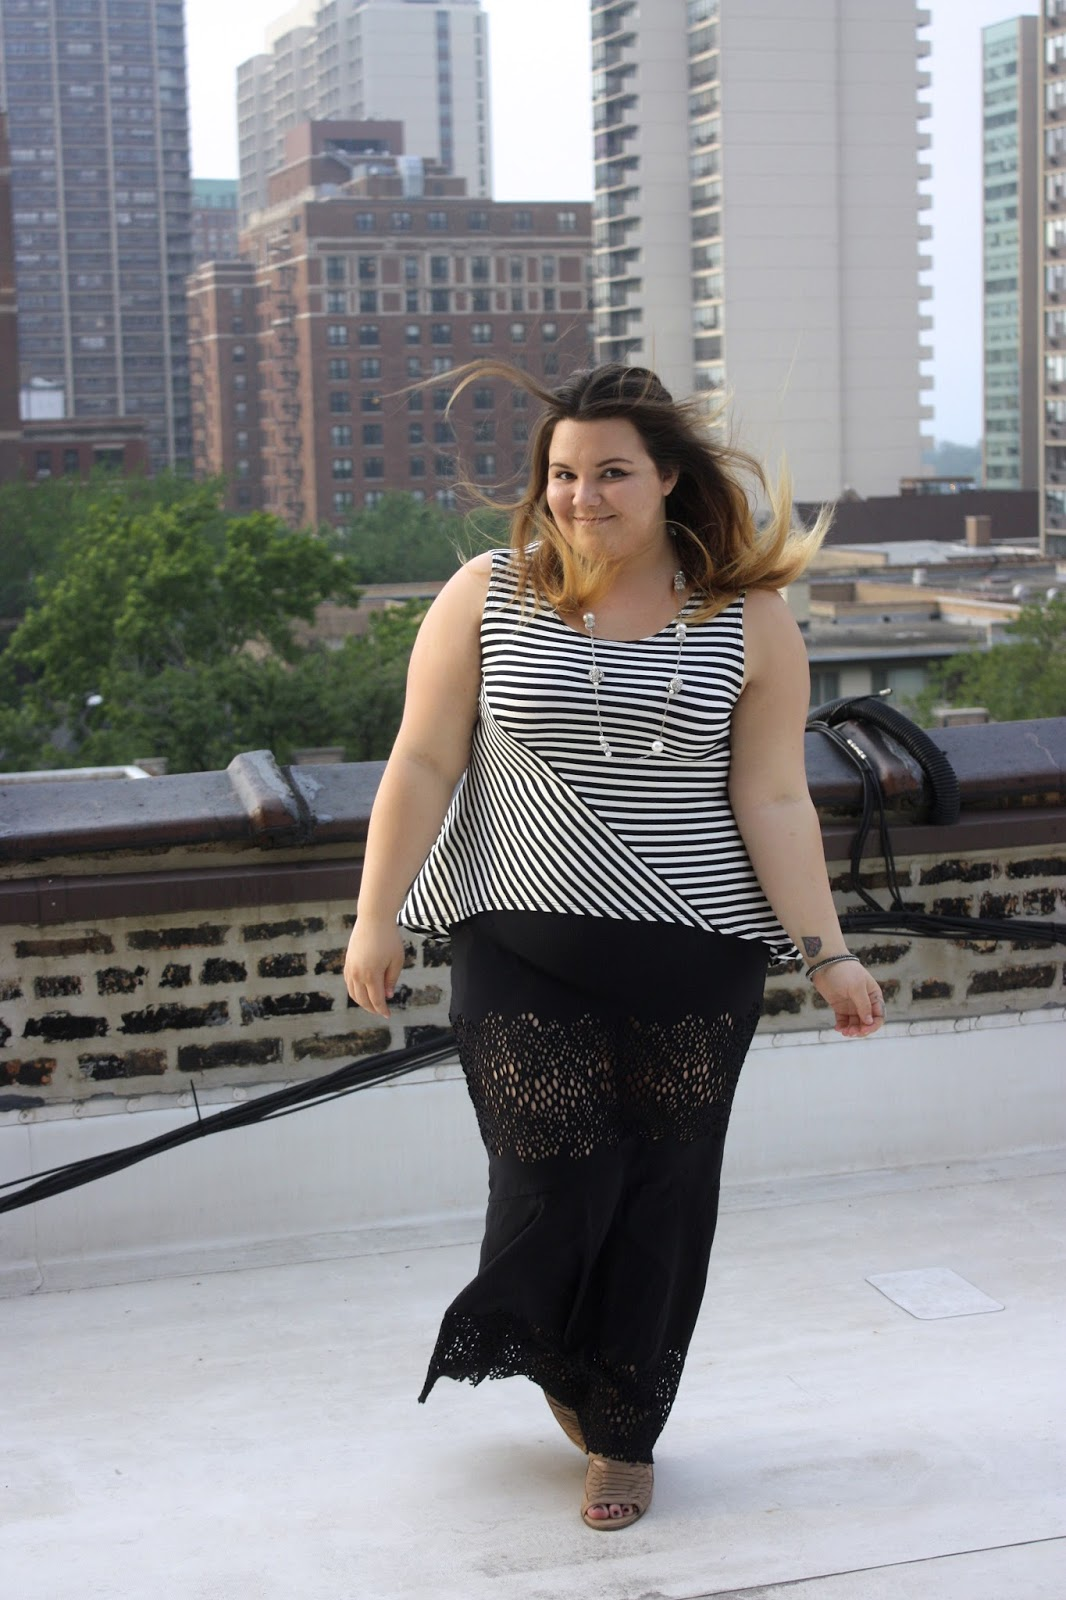 AnnaFesta, maxi skirt, plus size fashion, natalie craig, natalie in the city, chicago rooftop, plus size fashion blogger, cute curvy collection, Anne Fanganello